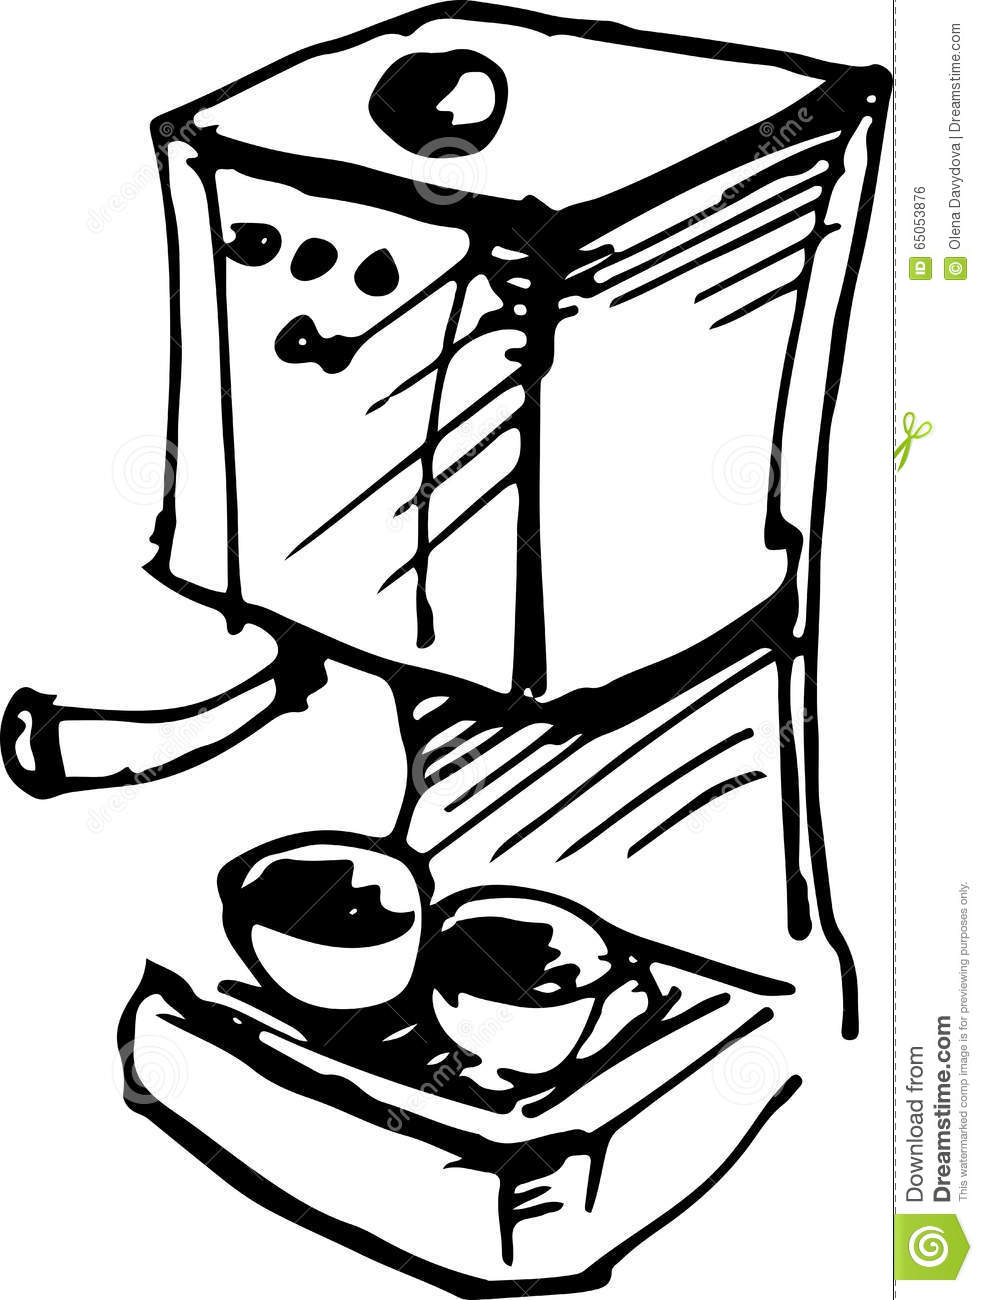 Coffee Maker. Vector Illustration Stock Vector - Illustration of ...